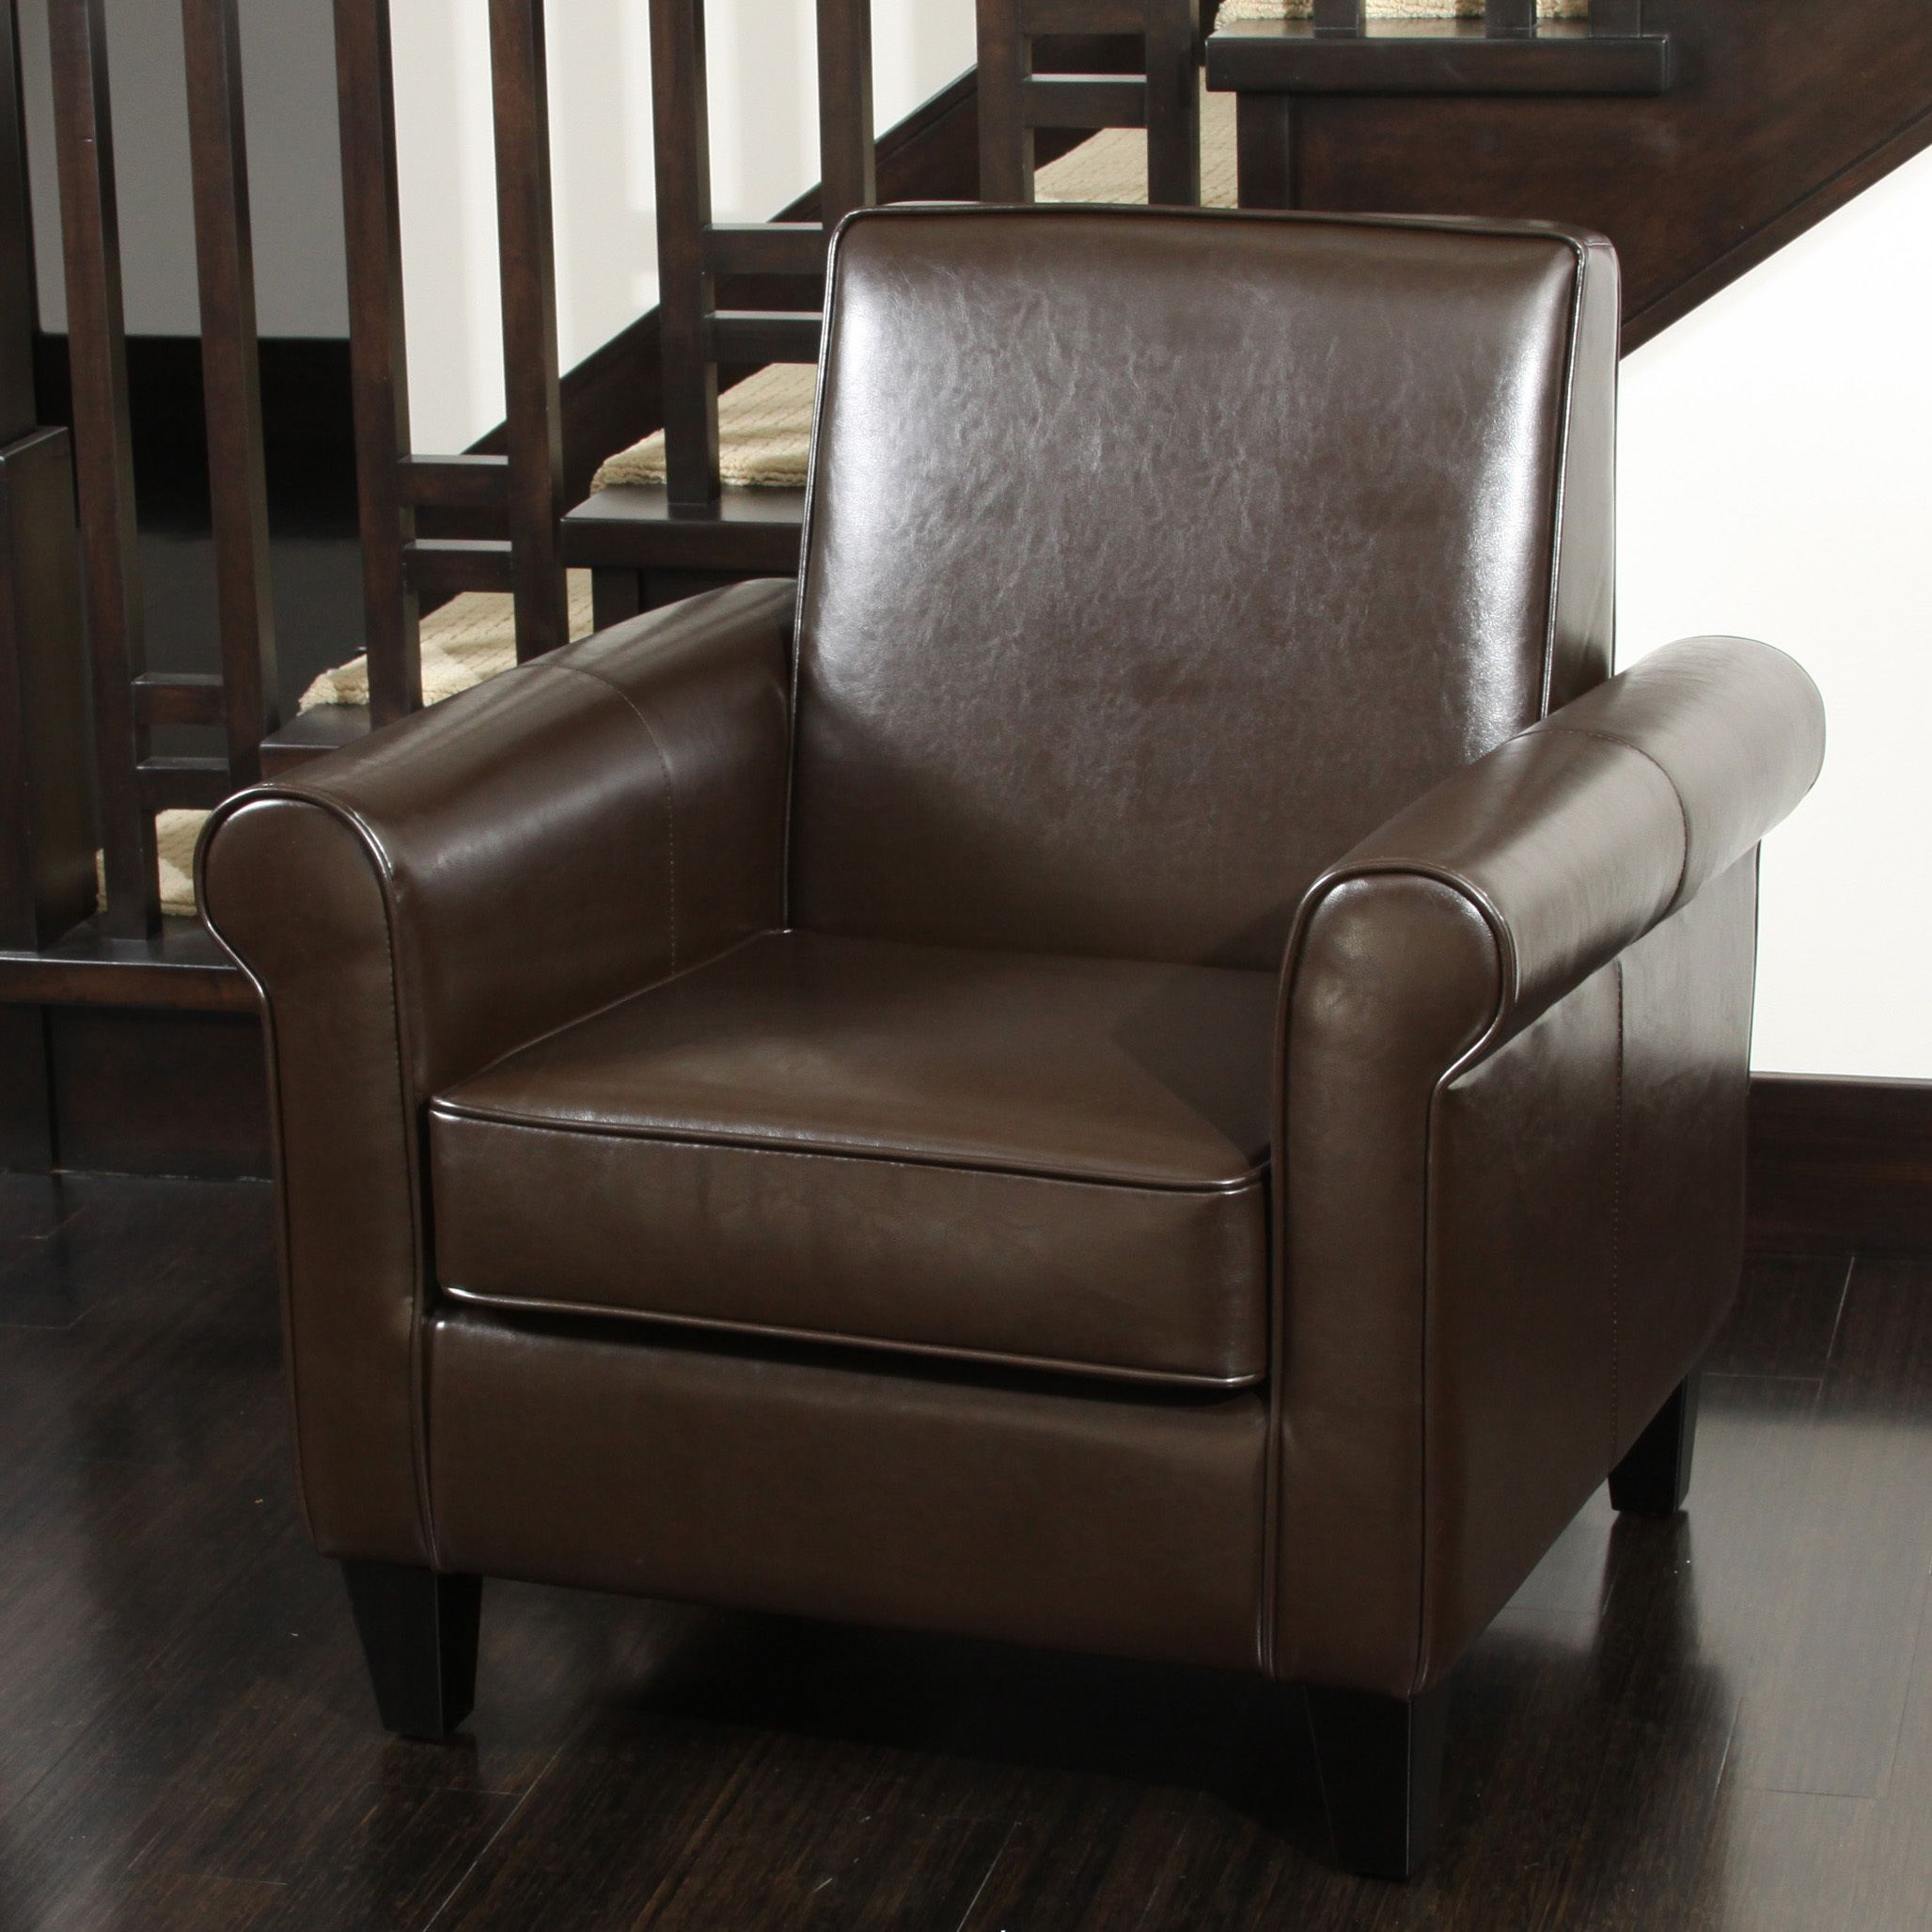 Charmant Freemont Brown Bonded Leather Club Chair By Christopher Knight Home